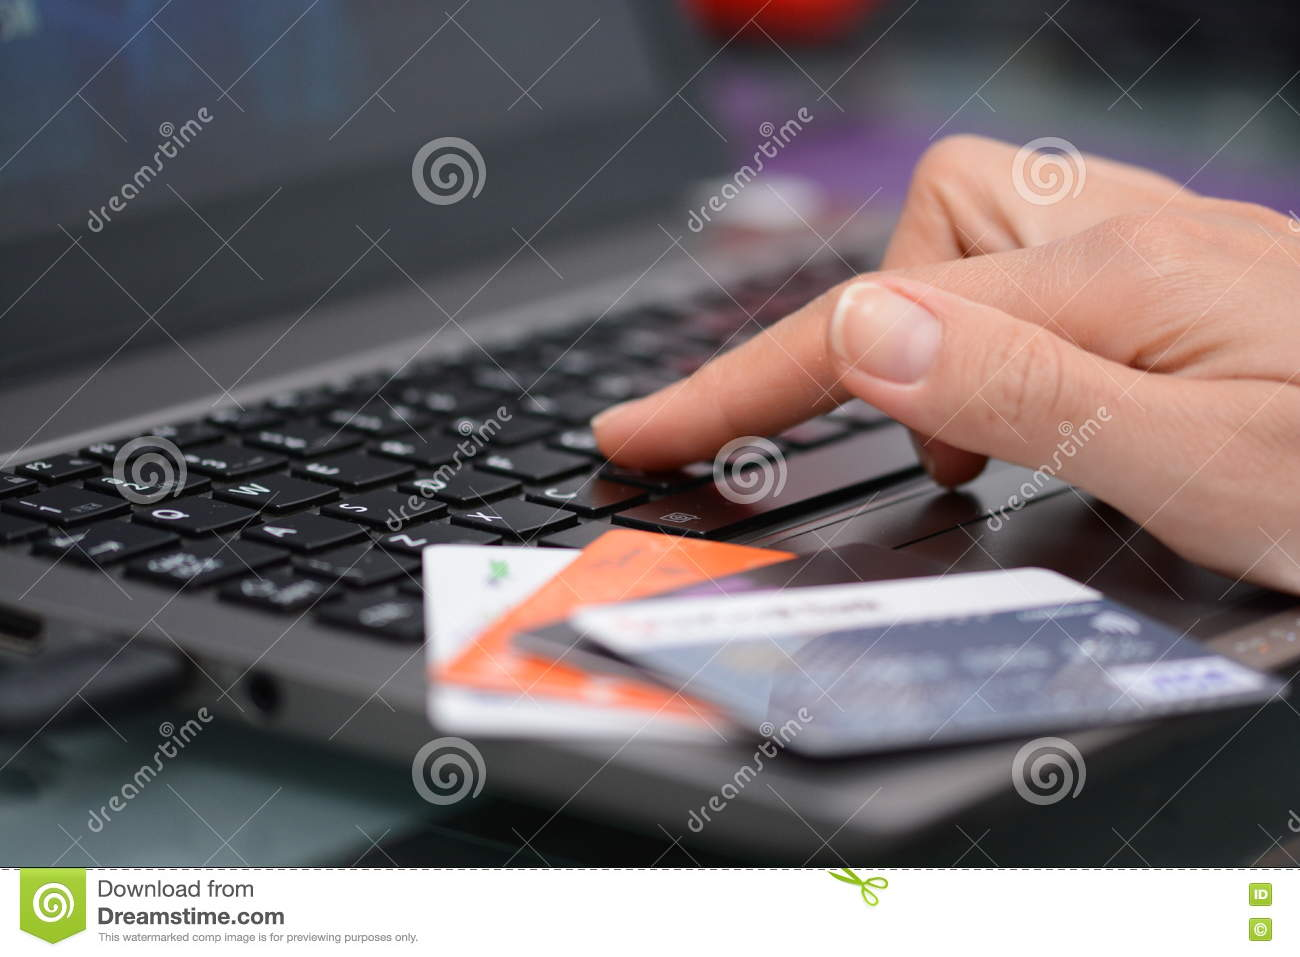 7e49bc0802d Close-up of Woman hand using a laptop and different colored credit cards  for online shopping or for internet banking